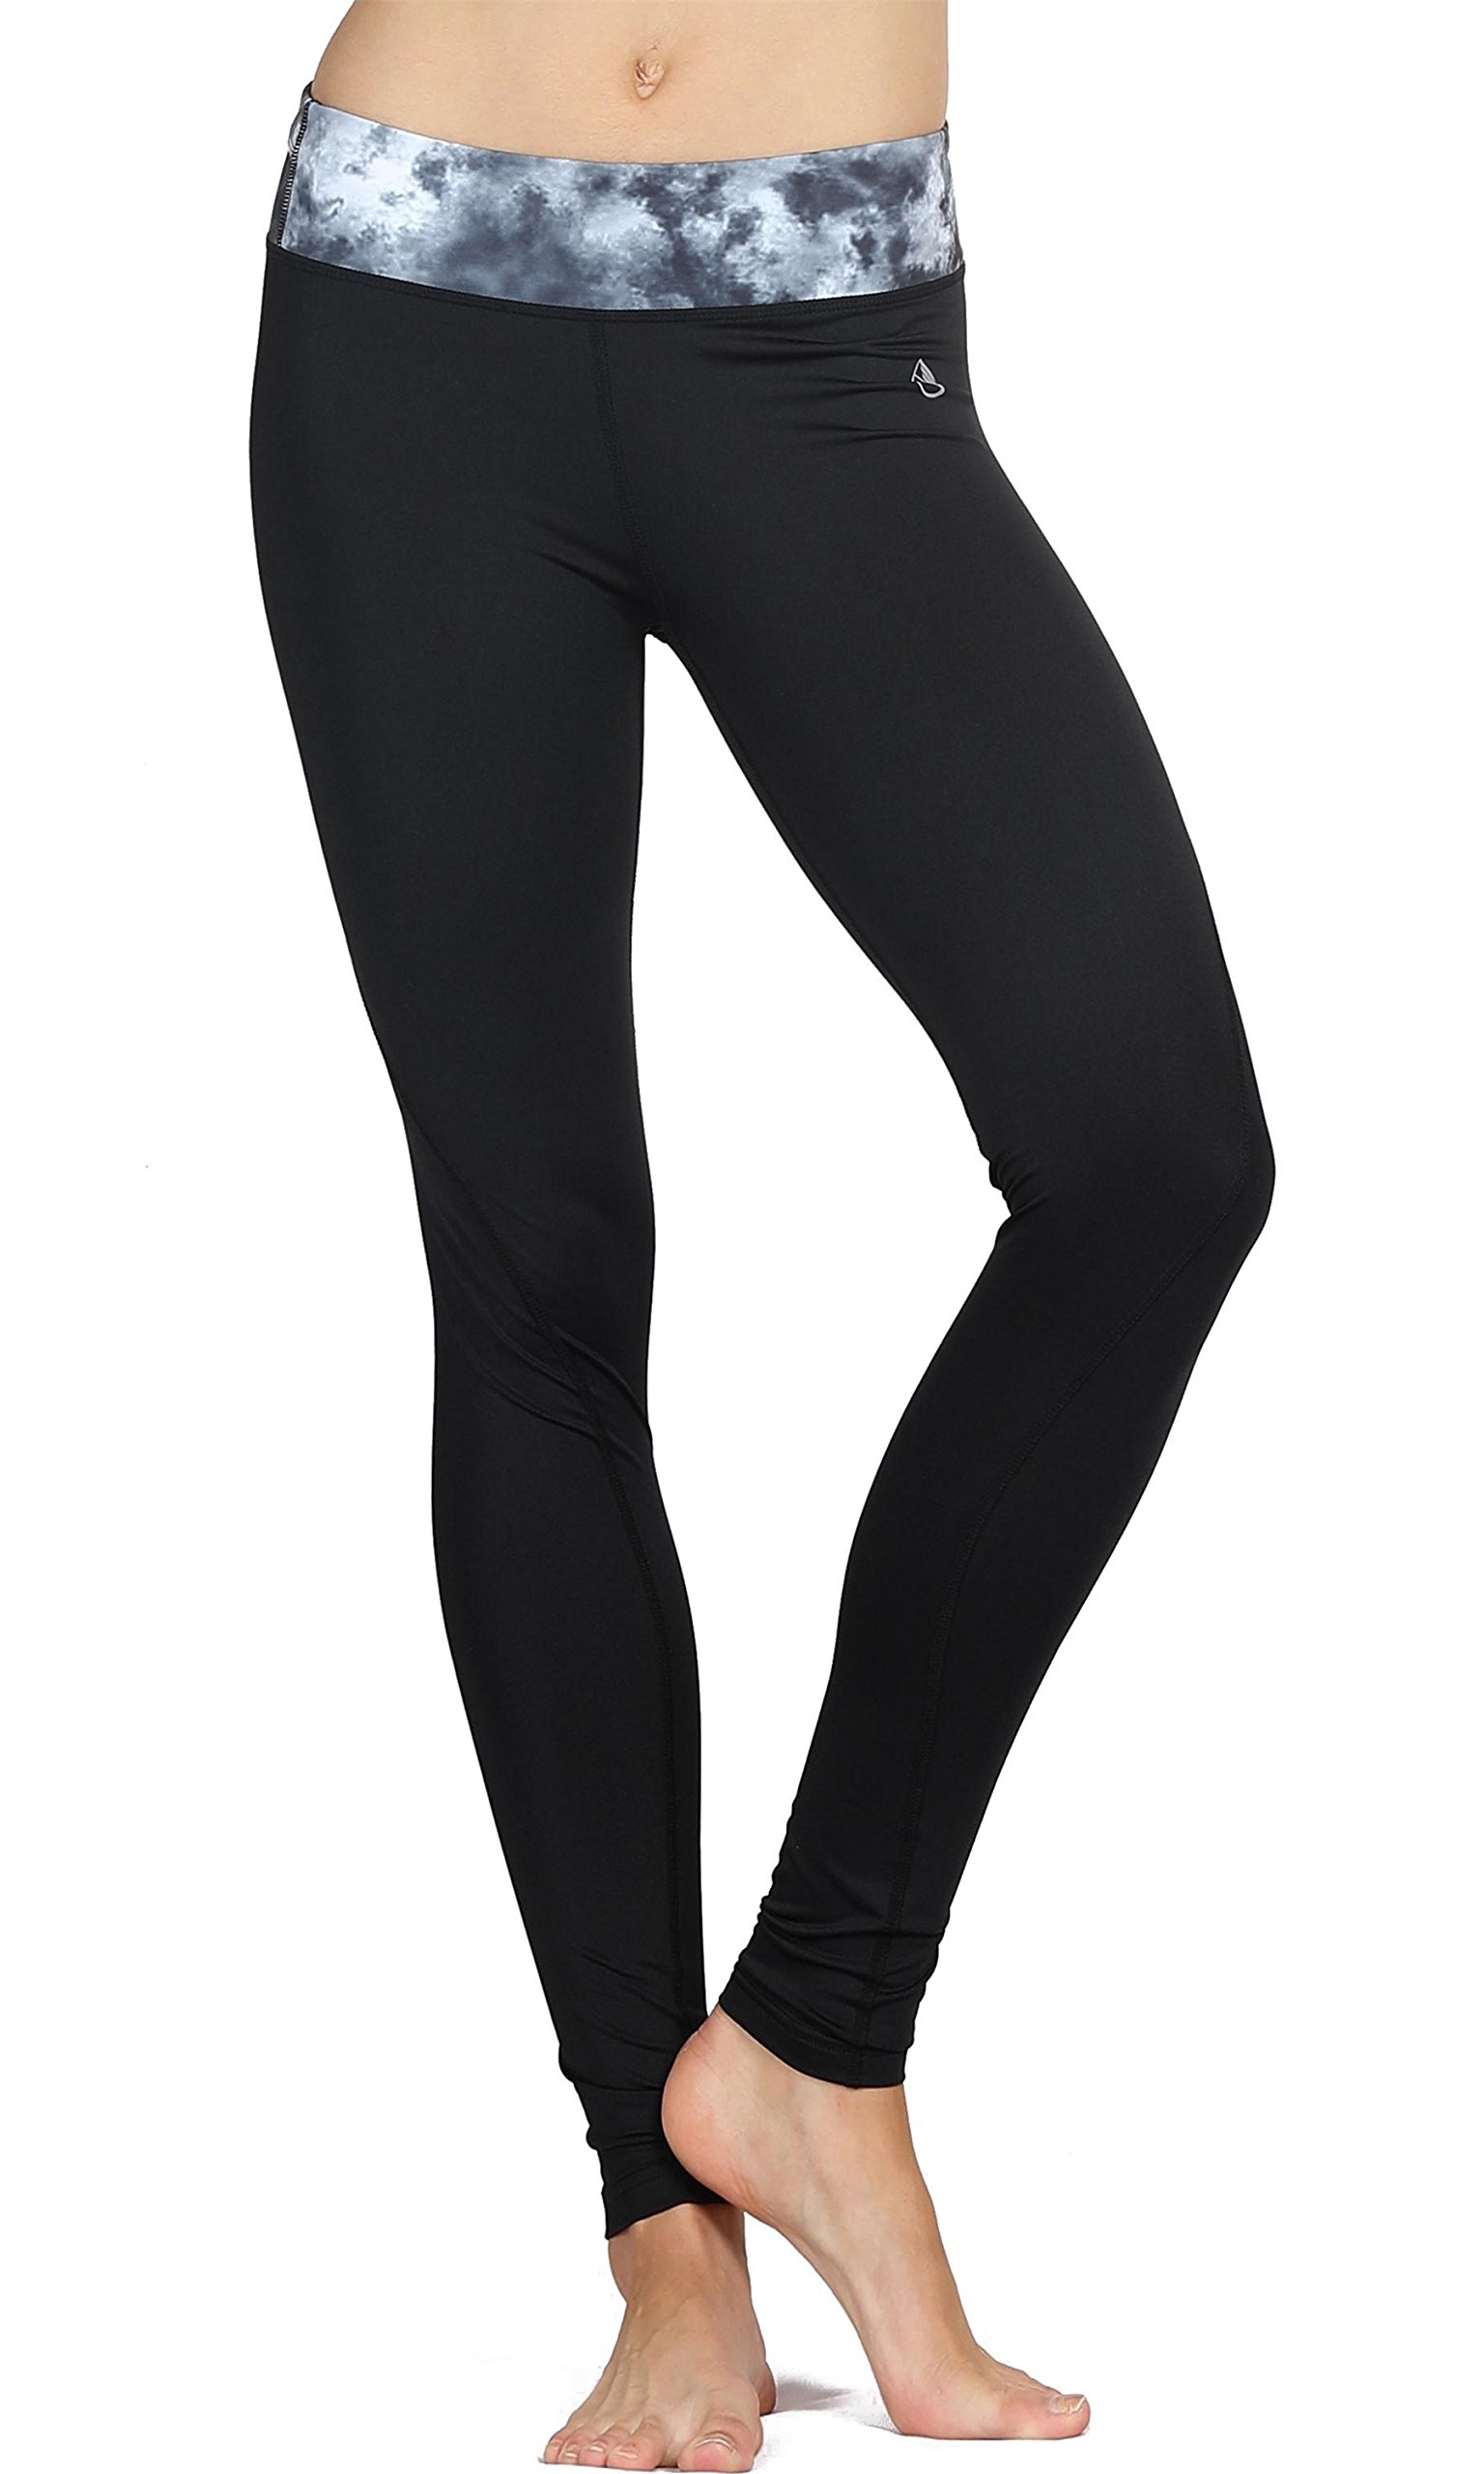 icyzone Activewear Women Running Pants Yoga Workout Leggings Slim Fitted Tights (M, Storm)